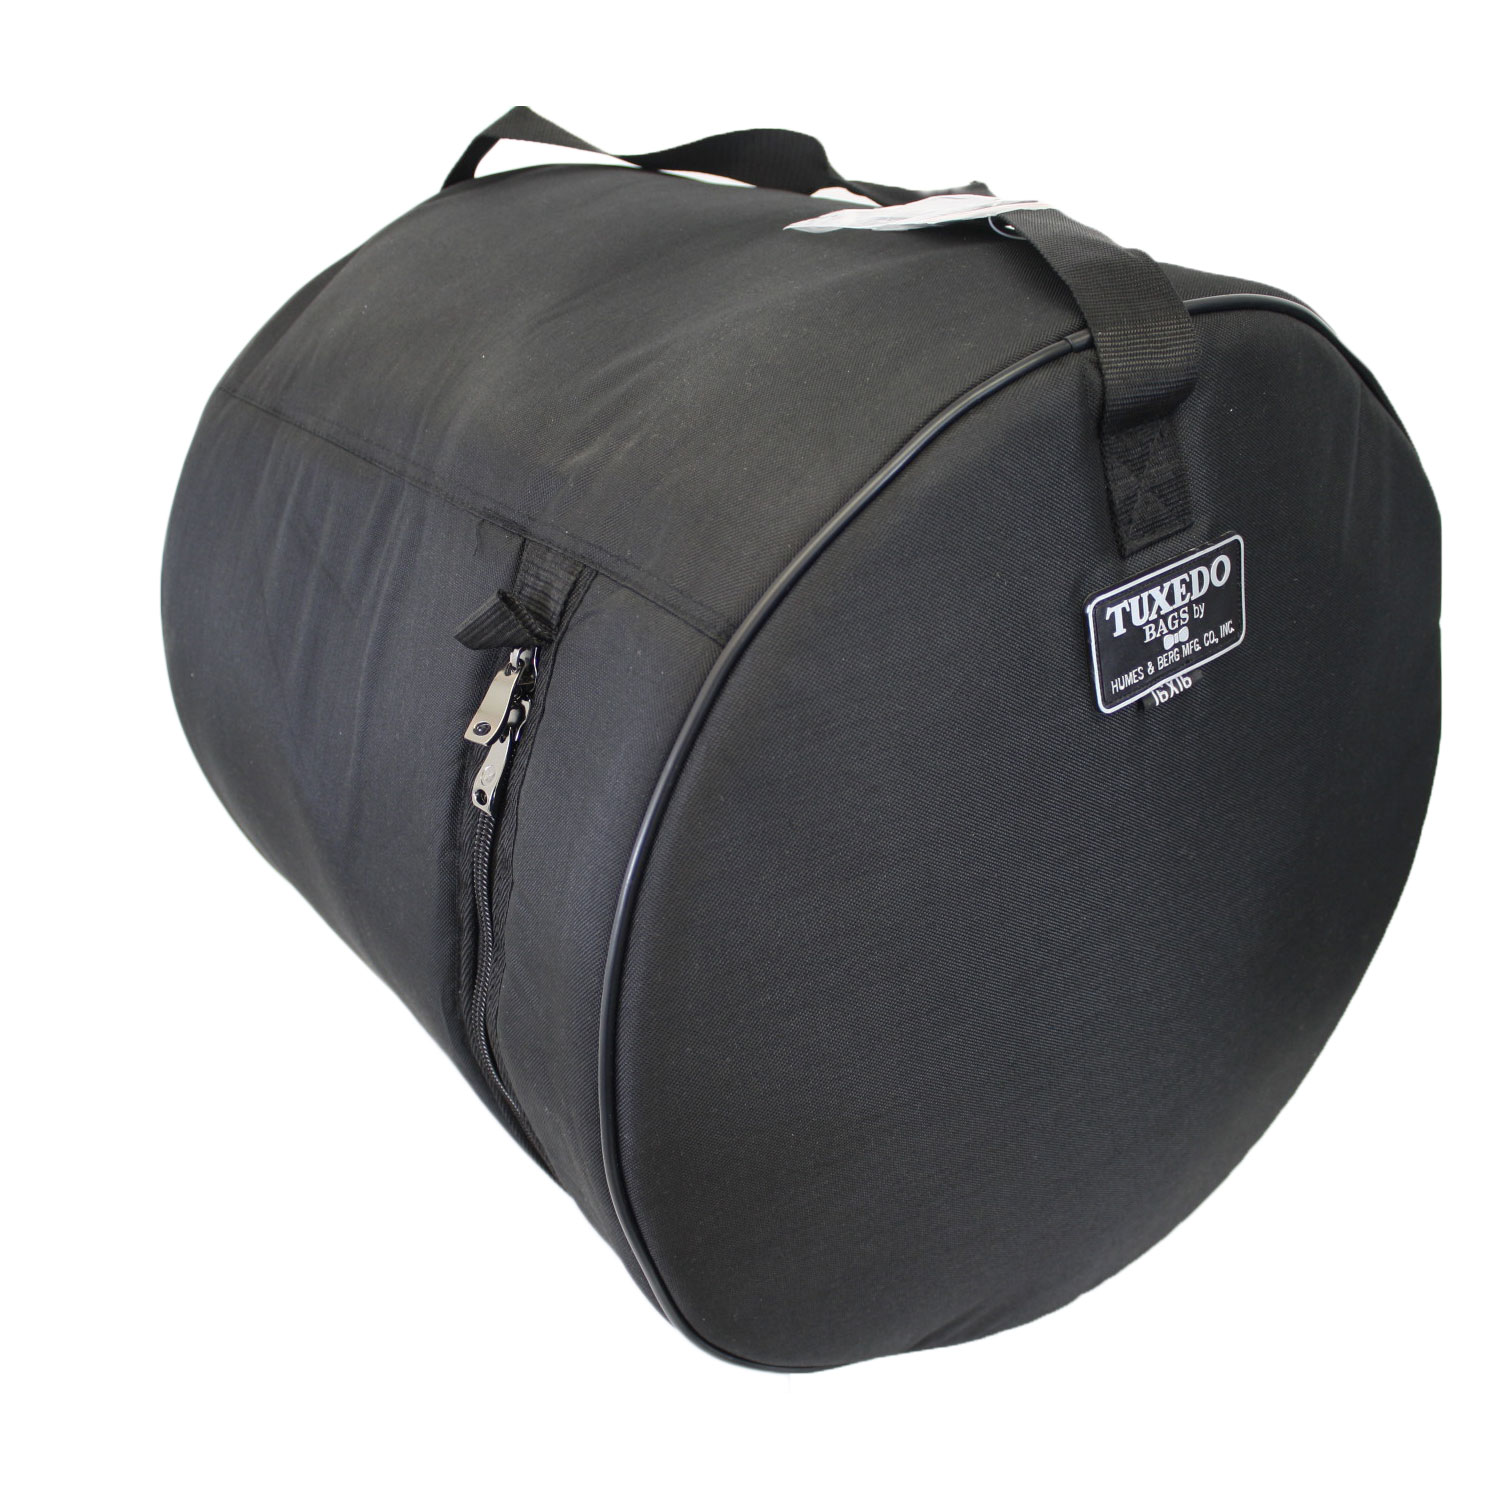 "Humes & Berg 9"" (Deep) x 13"" (Diameter) Tuxedo Tom Bag/Soft Case"